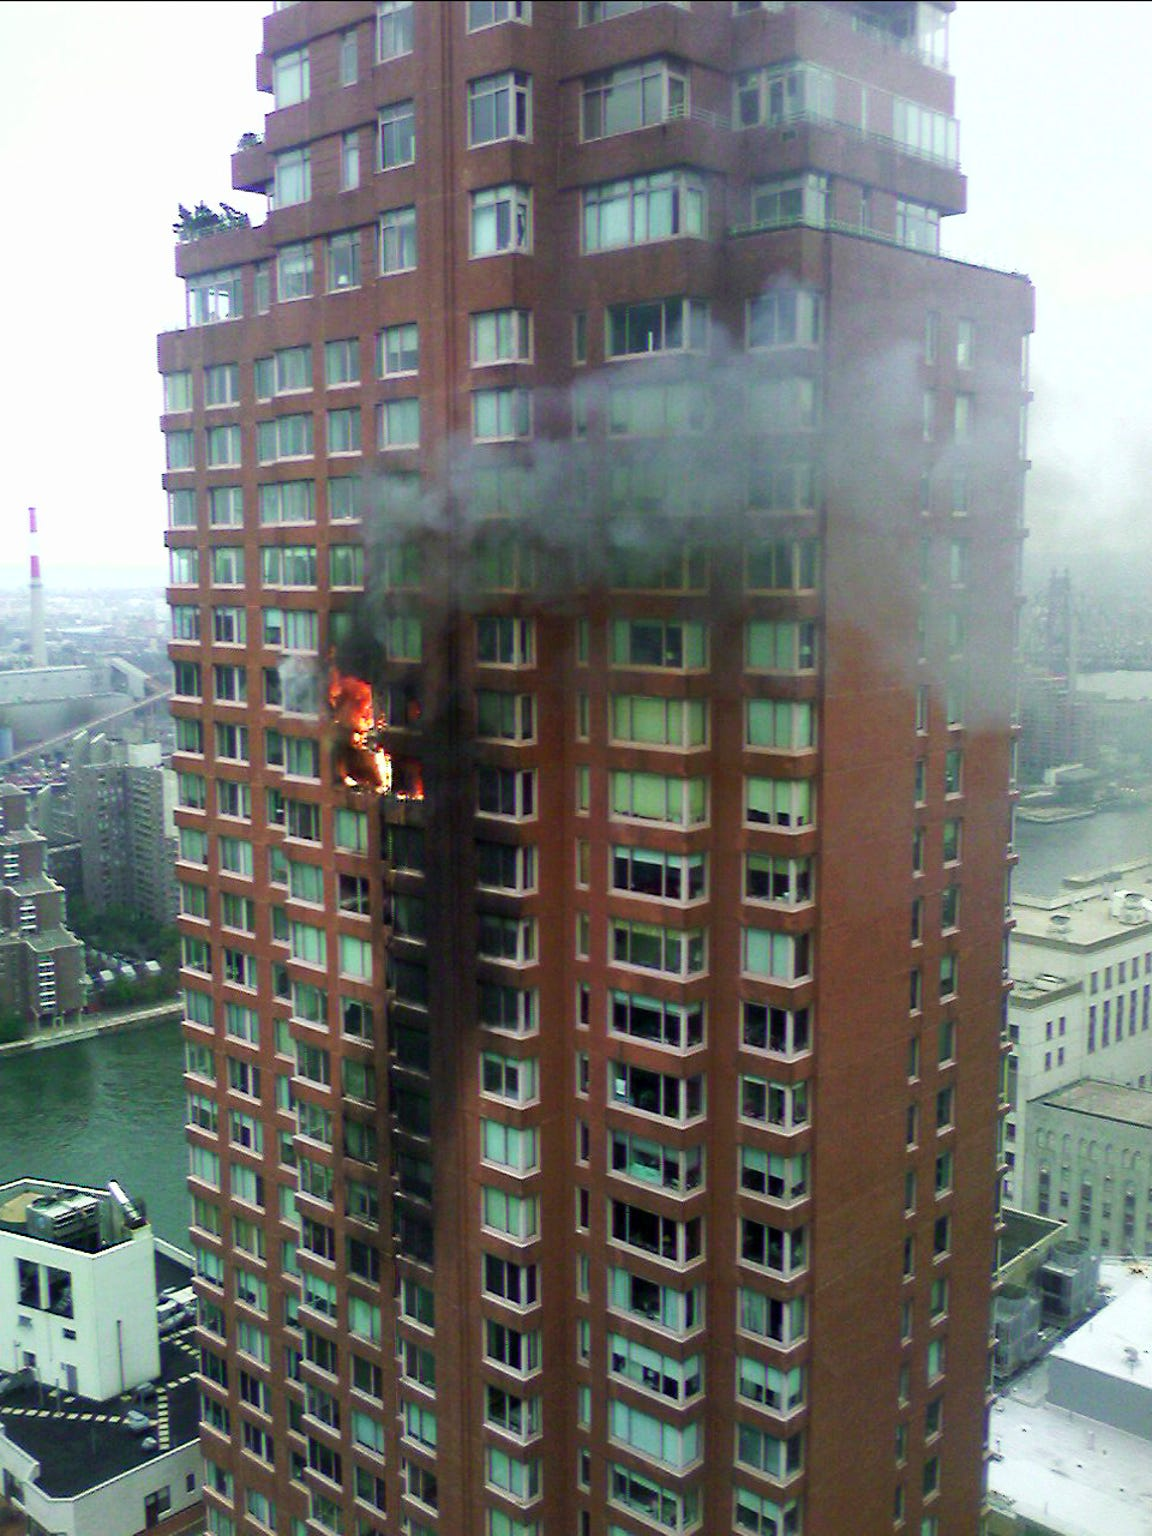 Flames and smoke are seen coming out of windows at the location where a small plane crashed into a 50-story residential apartment building near 71st Street and York Avenue in New York. The crash killed New York Yankees pitcher Cory Lidle.